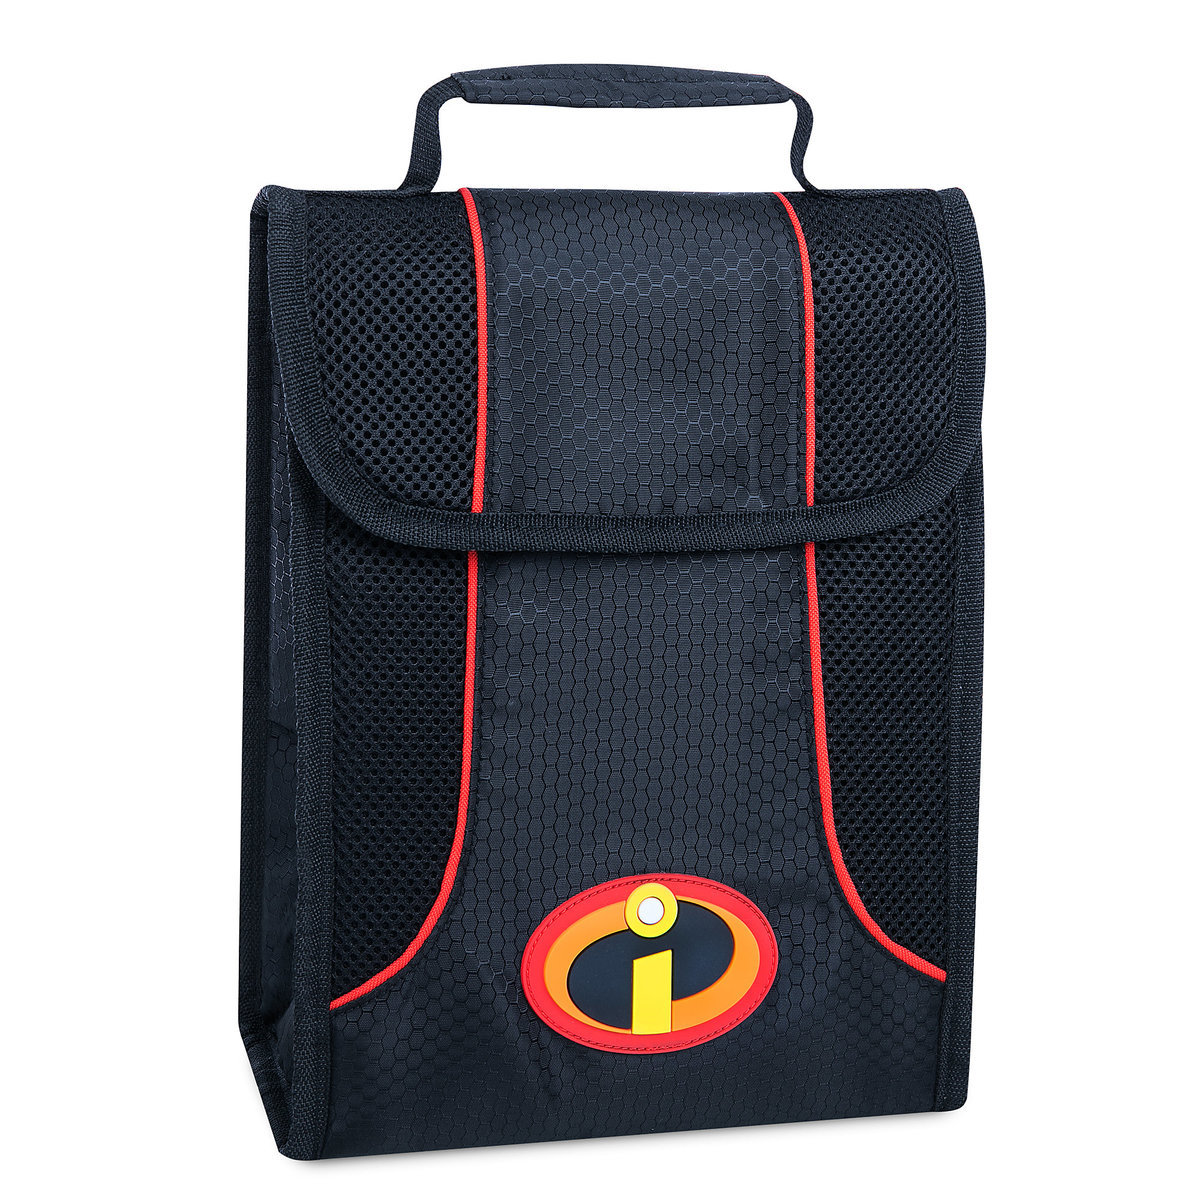 3c7f35a89f3 Product Image of Incredibles 2 Lunch Box   1